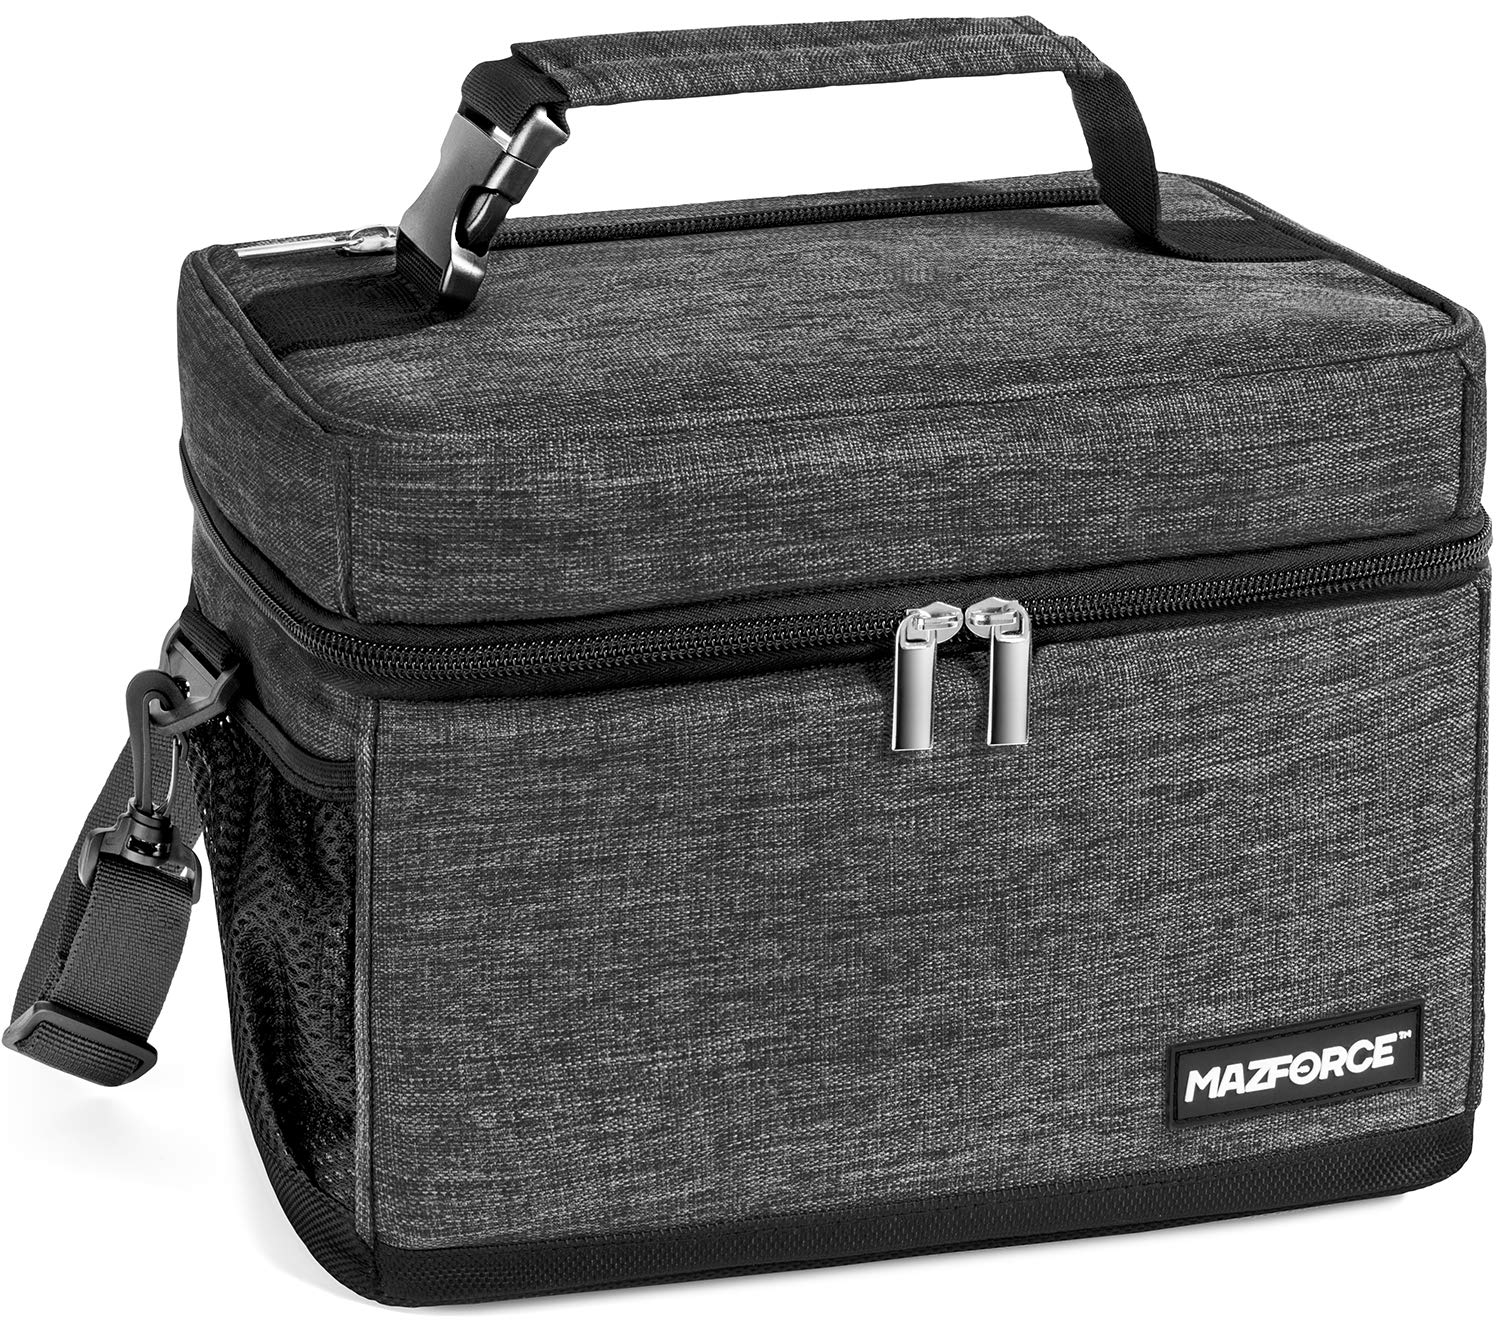 MAZFORCE LongHaul Lunch Bag Insulated Lunch Box - Spacious Pro Performance Adult Lunchbox Built to Withstand your Daily Grind (Lunch Bags Designed in California for Men, Adults, Women - Iron Grey) by MAZFORCE